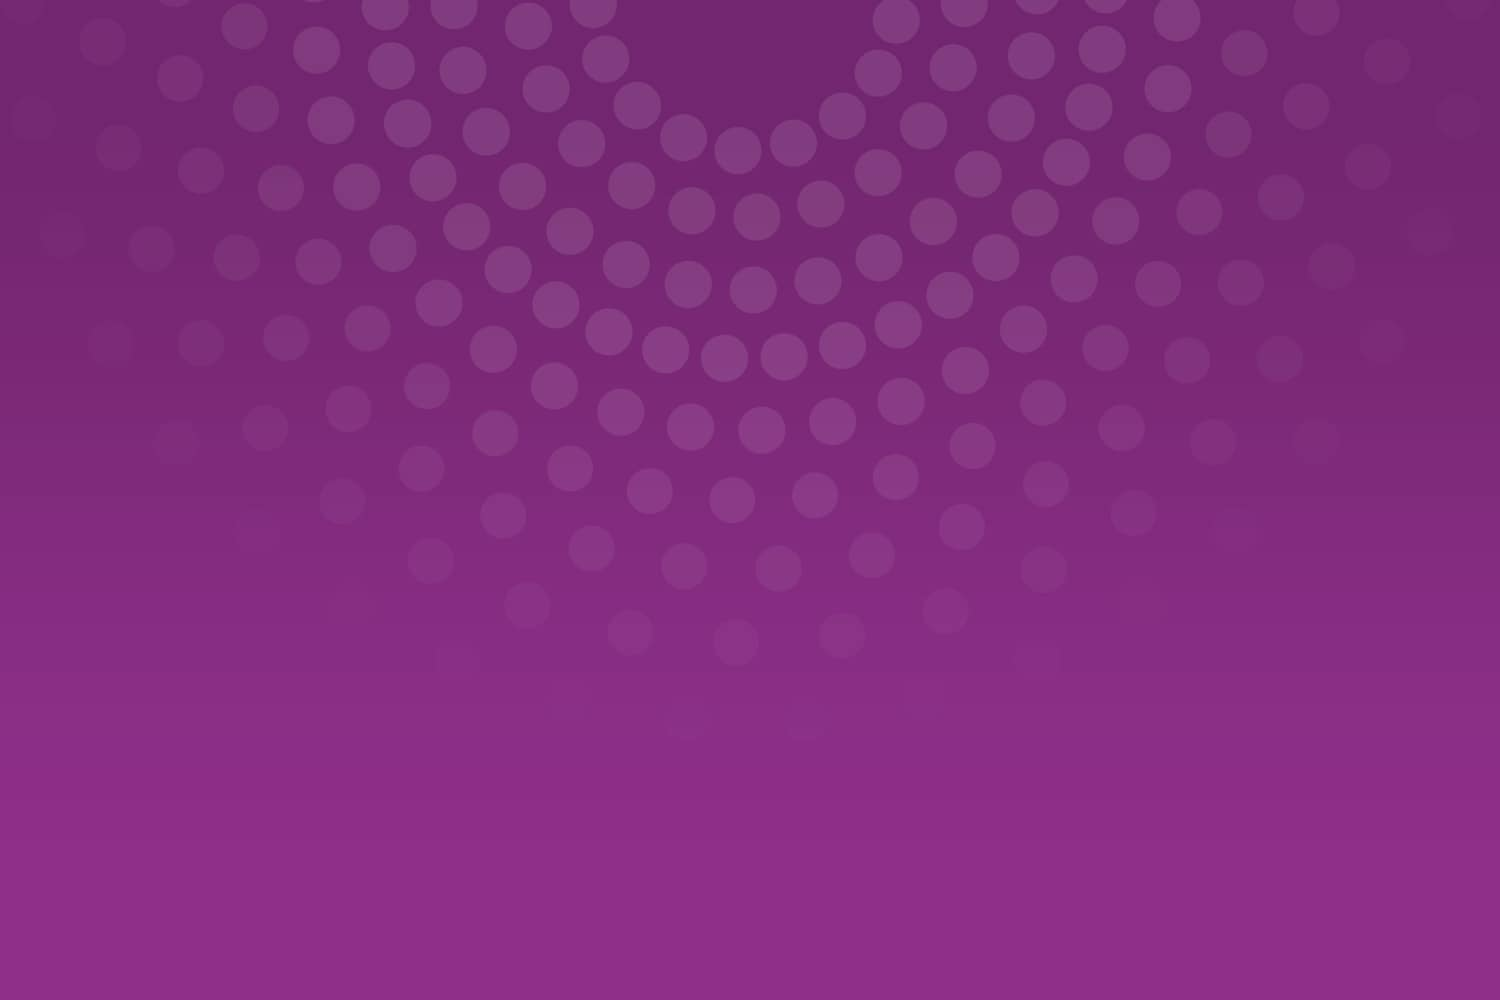 Abstract radiance art on plum background